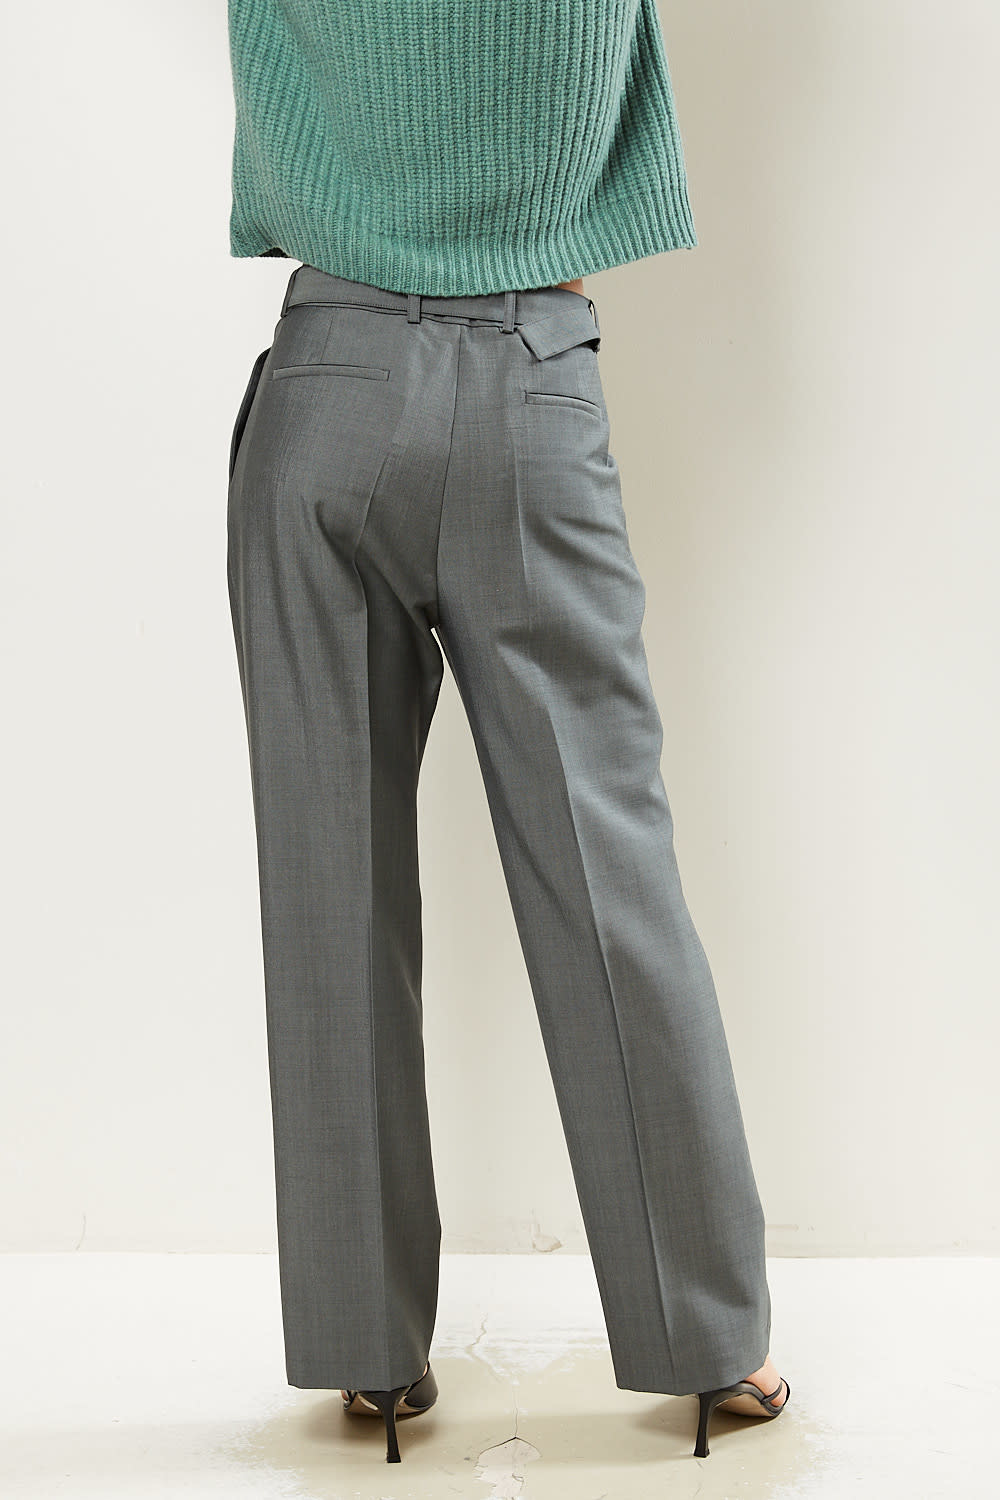 Christian Wijnants - Pahal belted tailored trousers